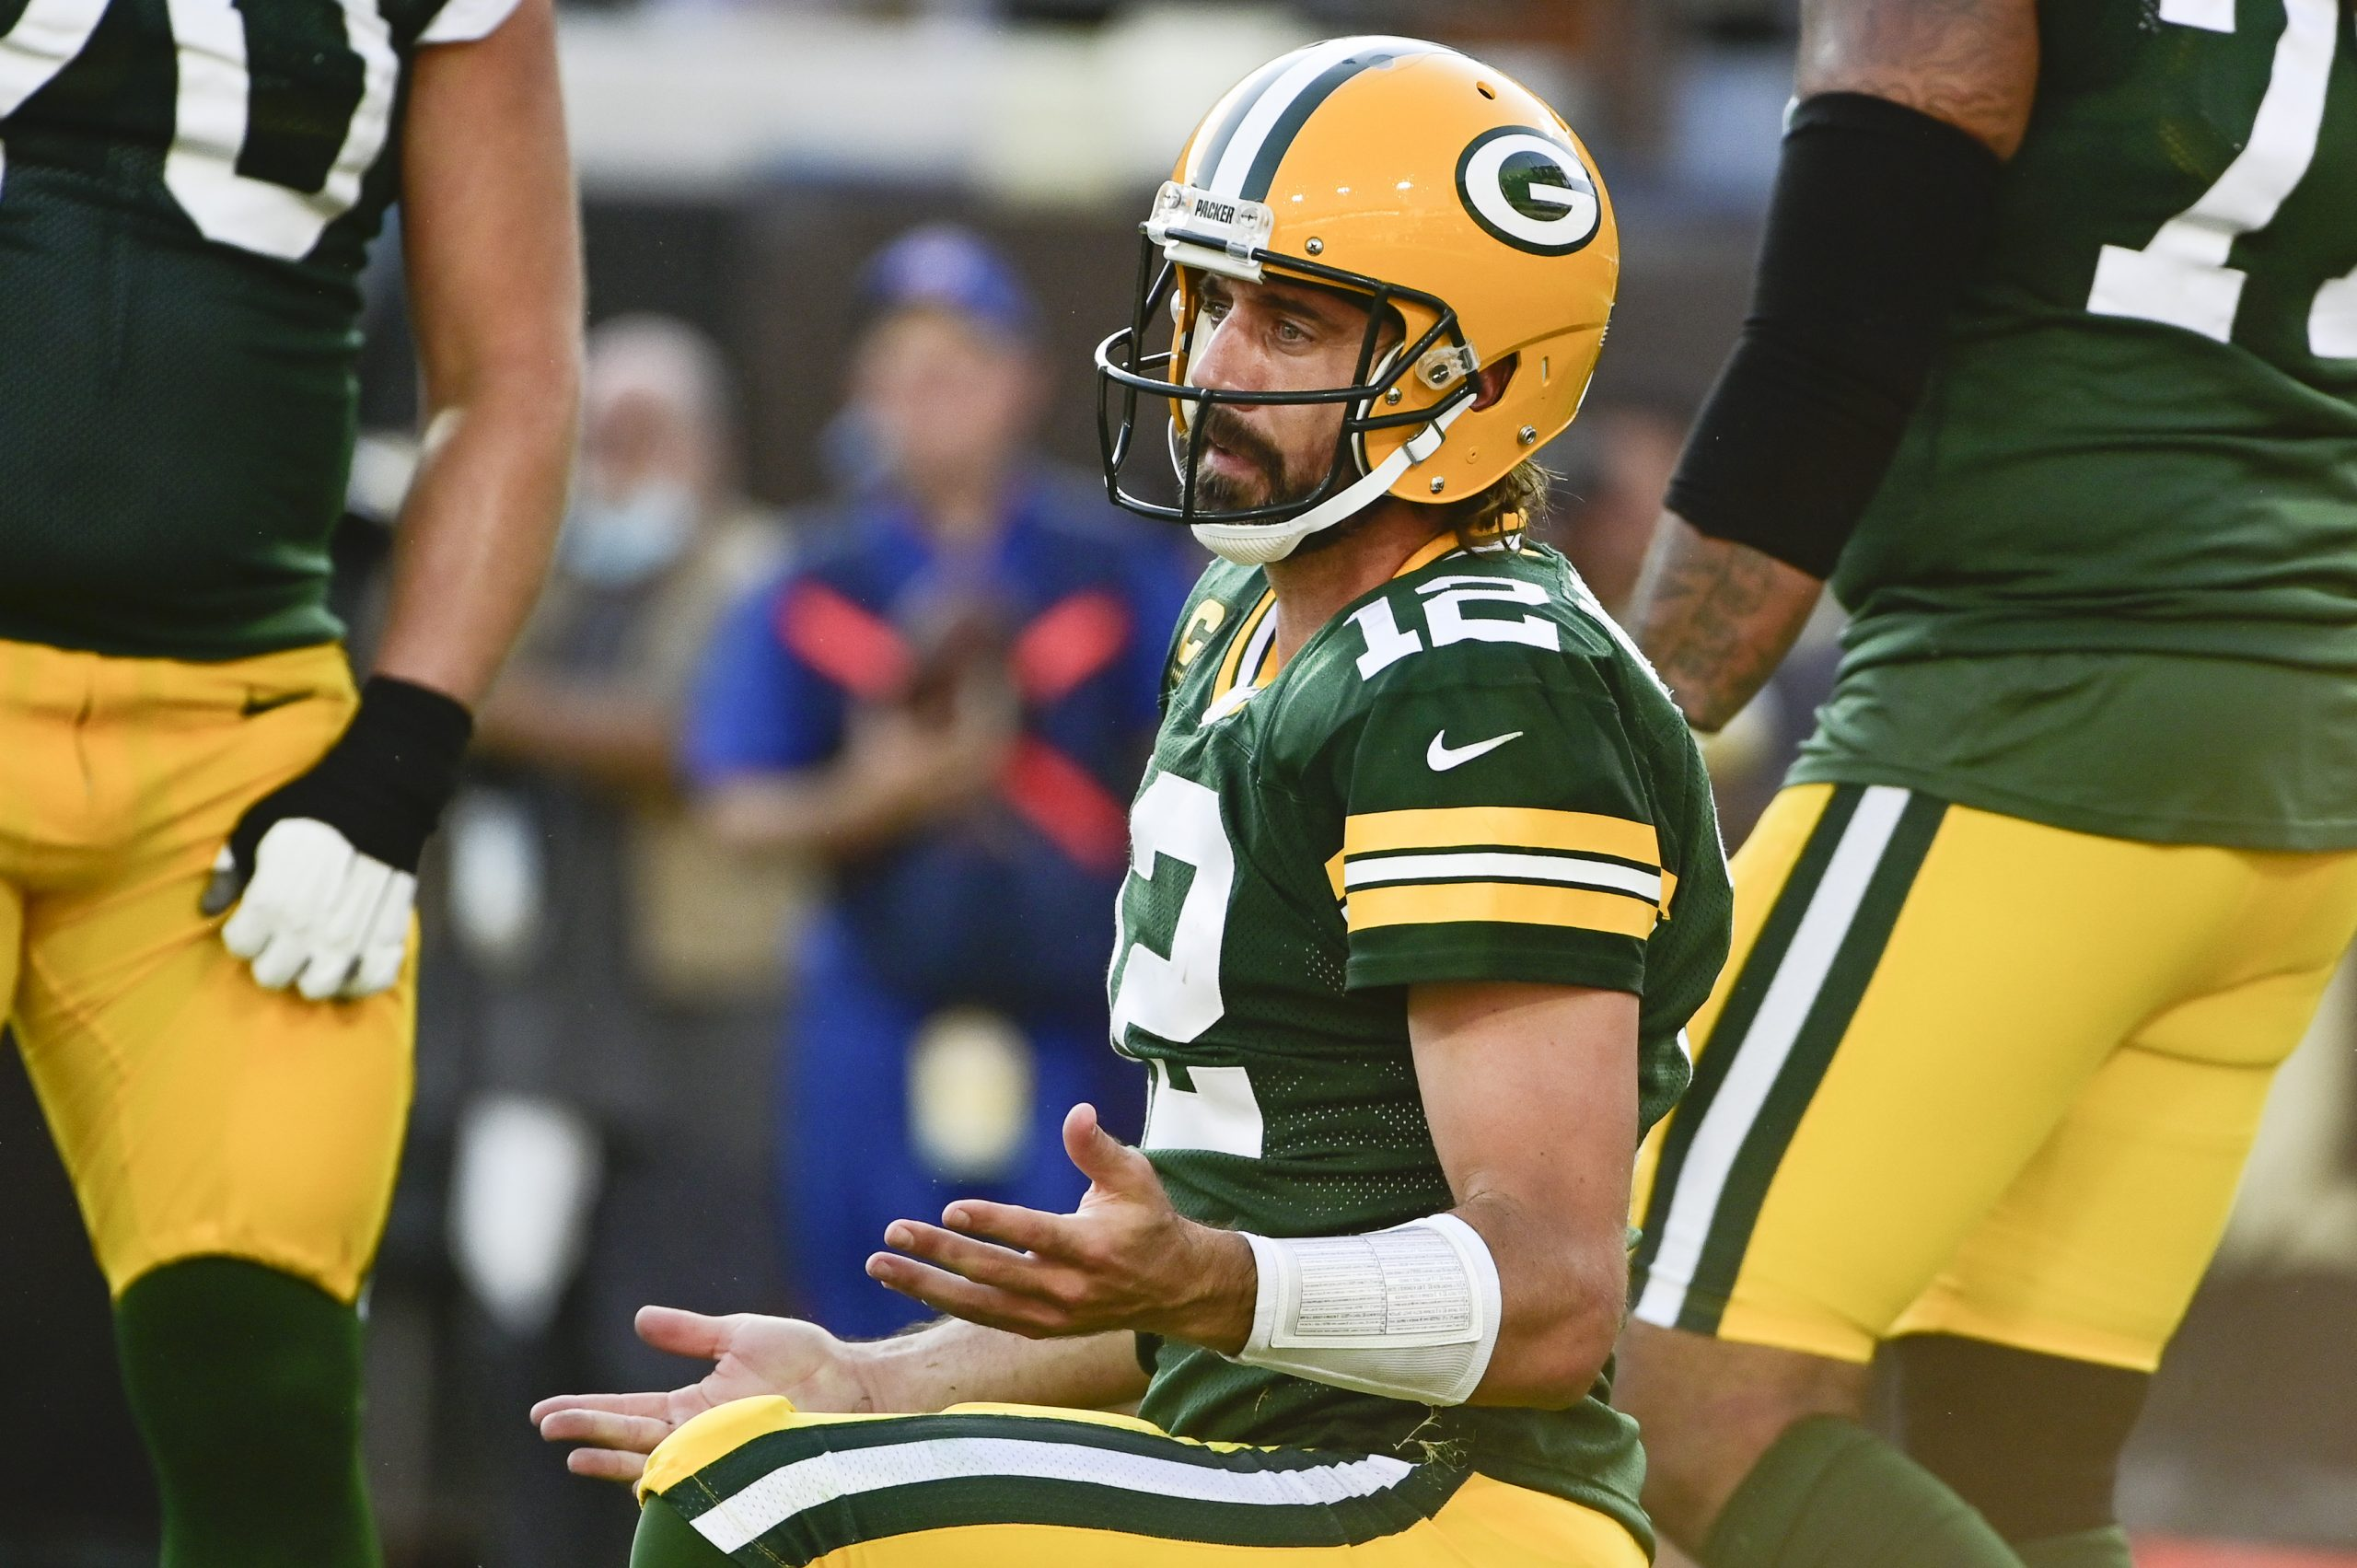 CBS's 'NFL Today' pregame hosts absolutely tore into Aaron Rodgers